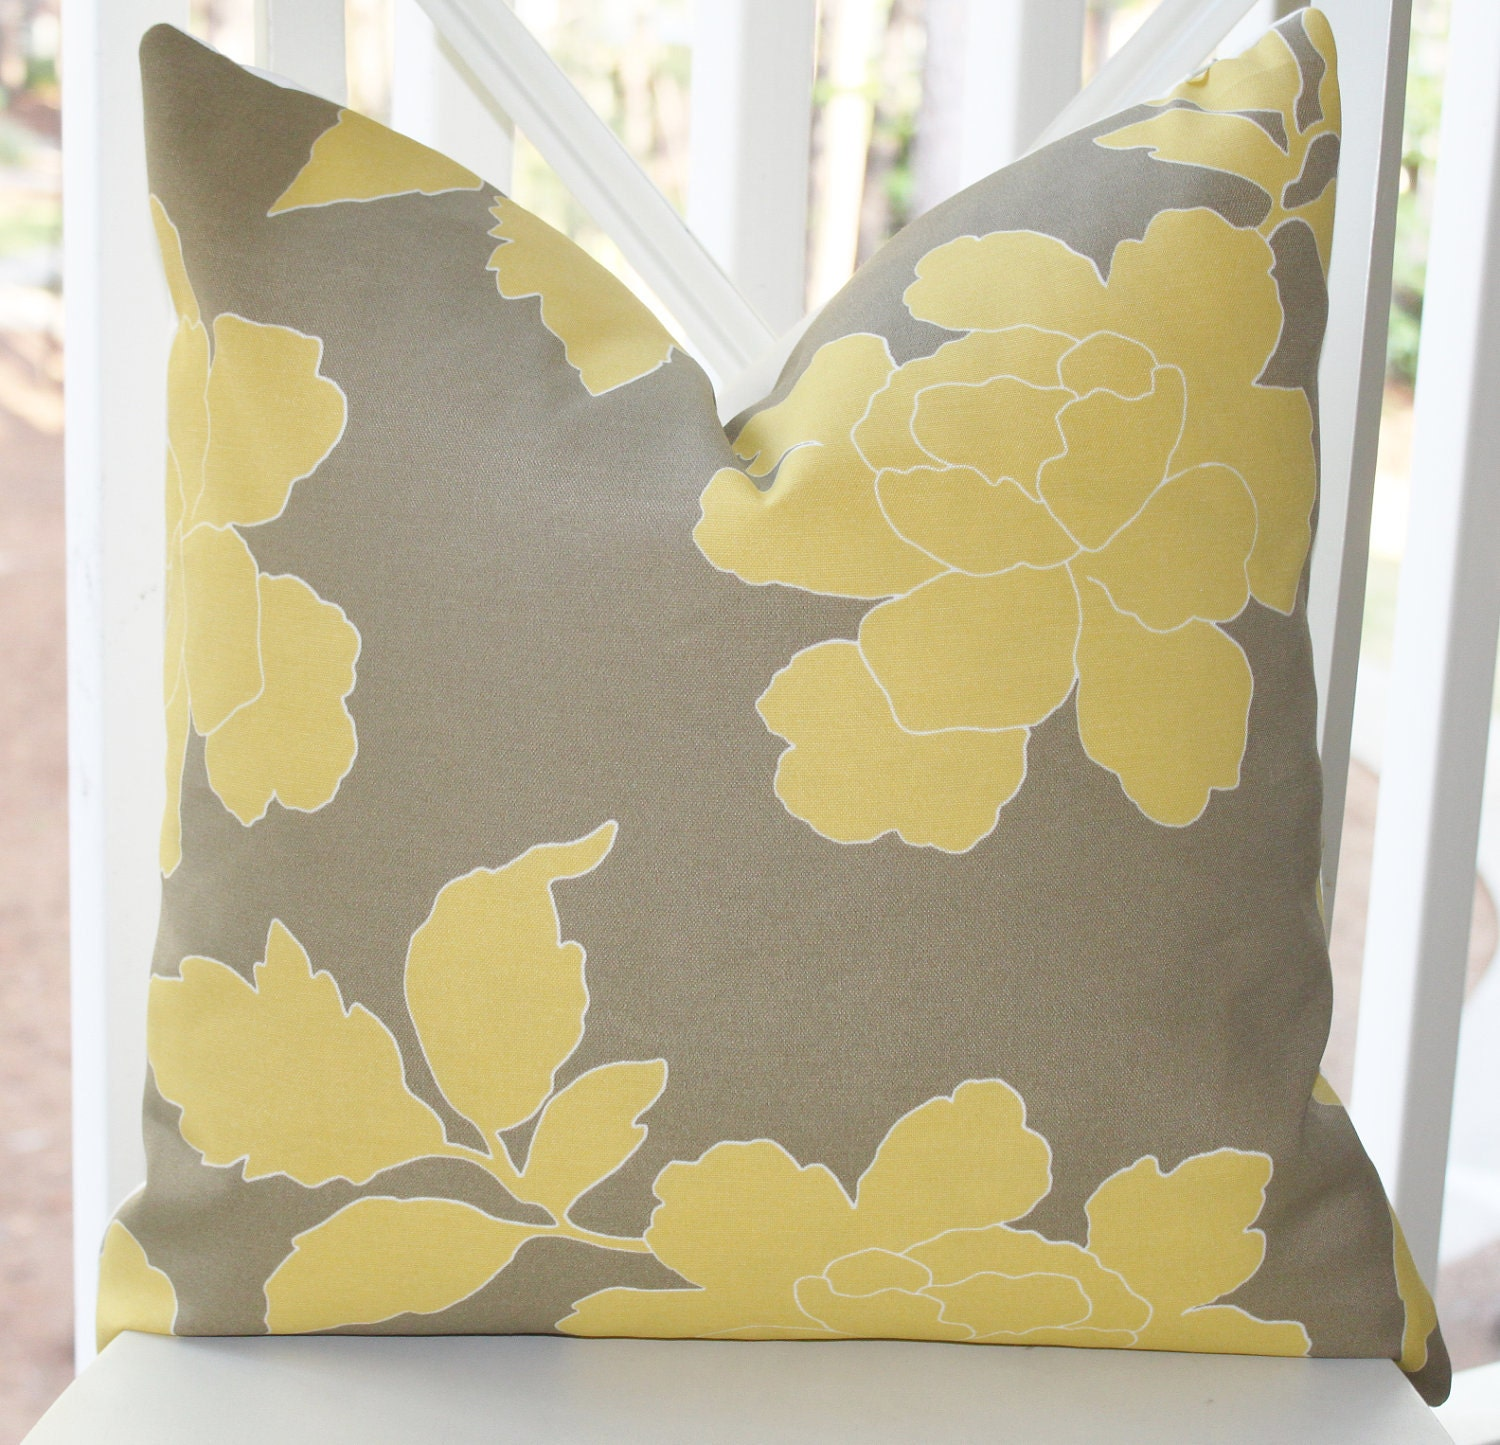 Decorative Pillow Cover Yellow Grey Dwell Studio Pillow Cover